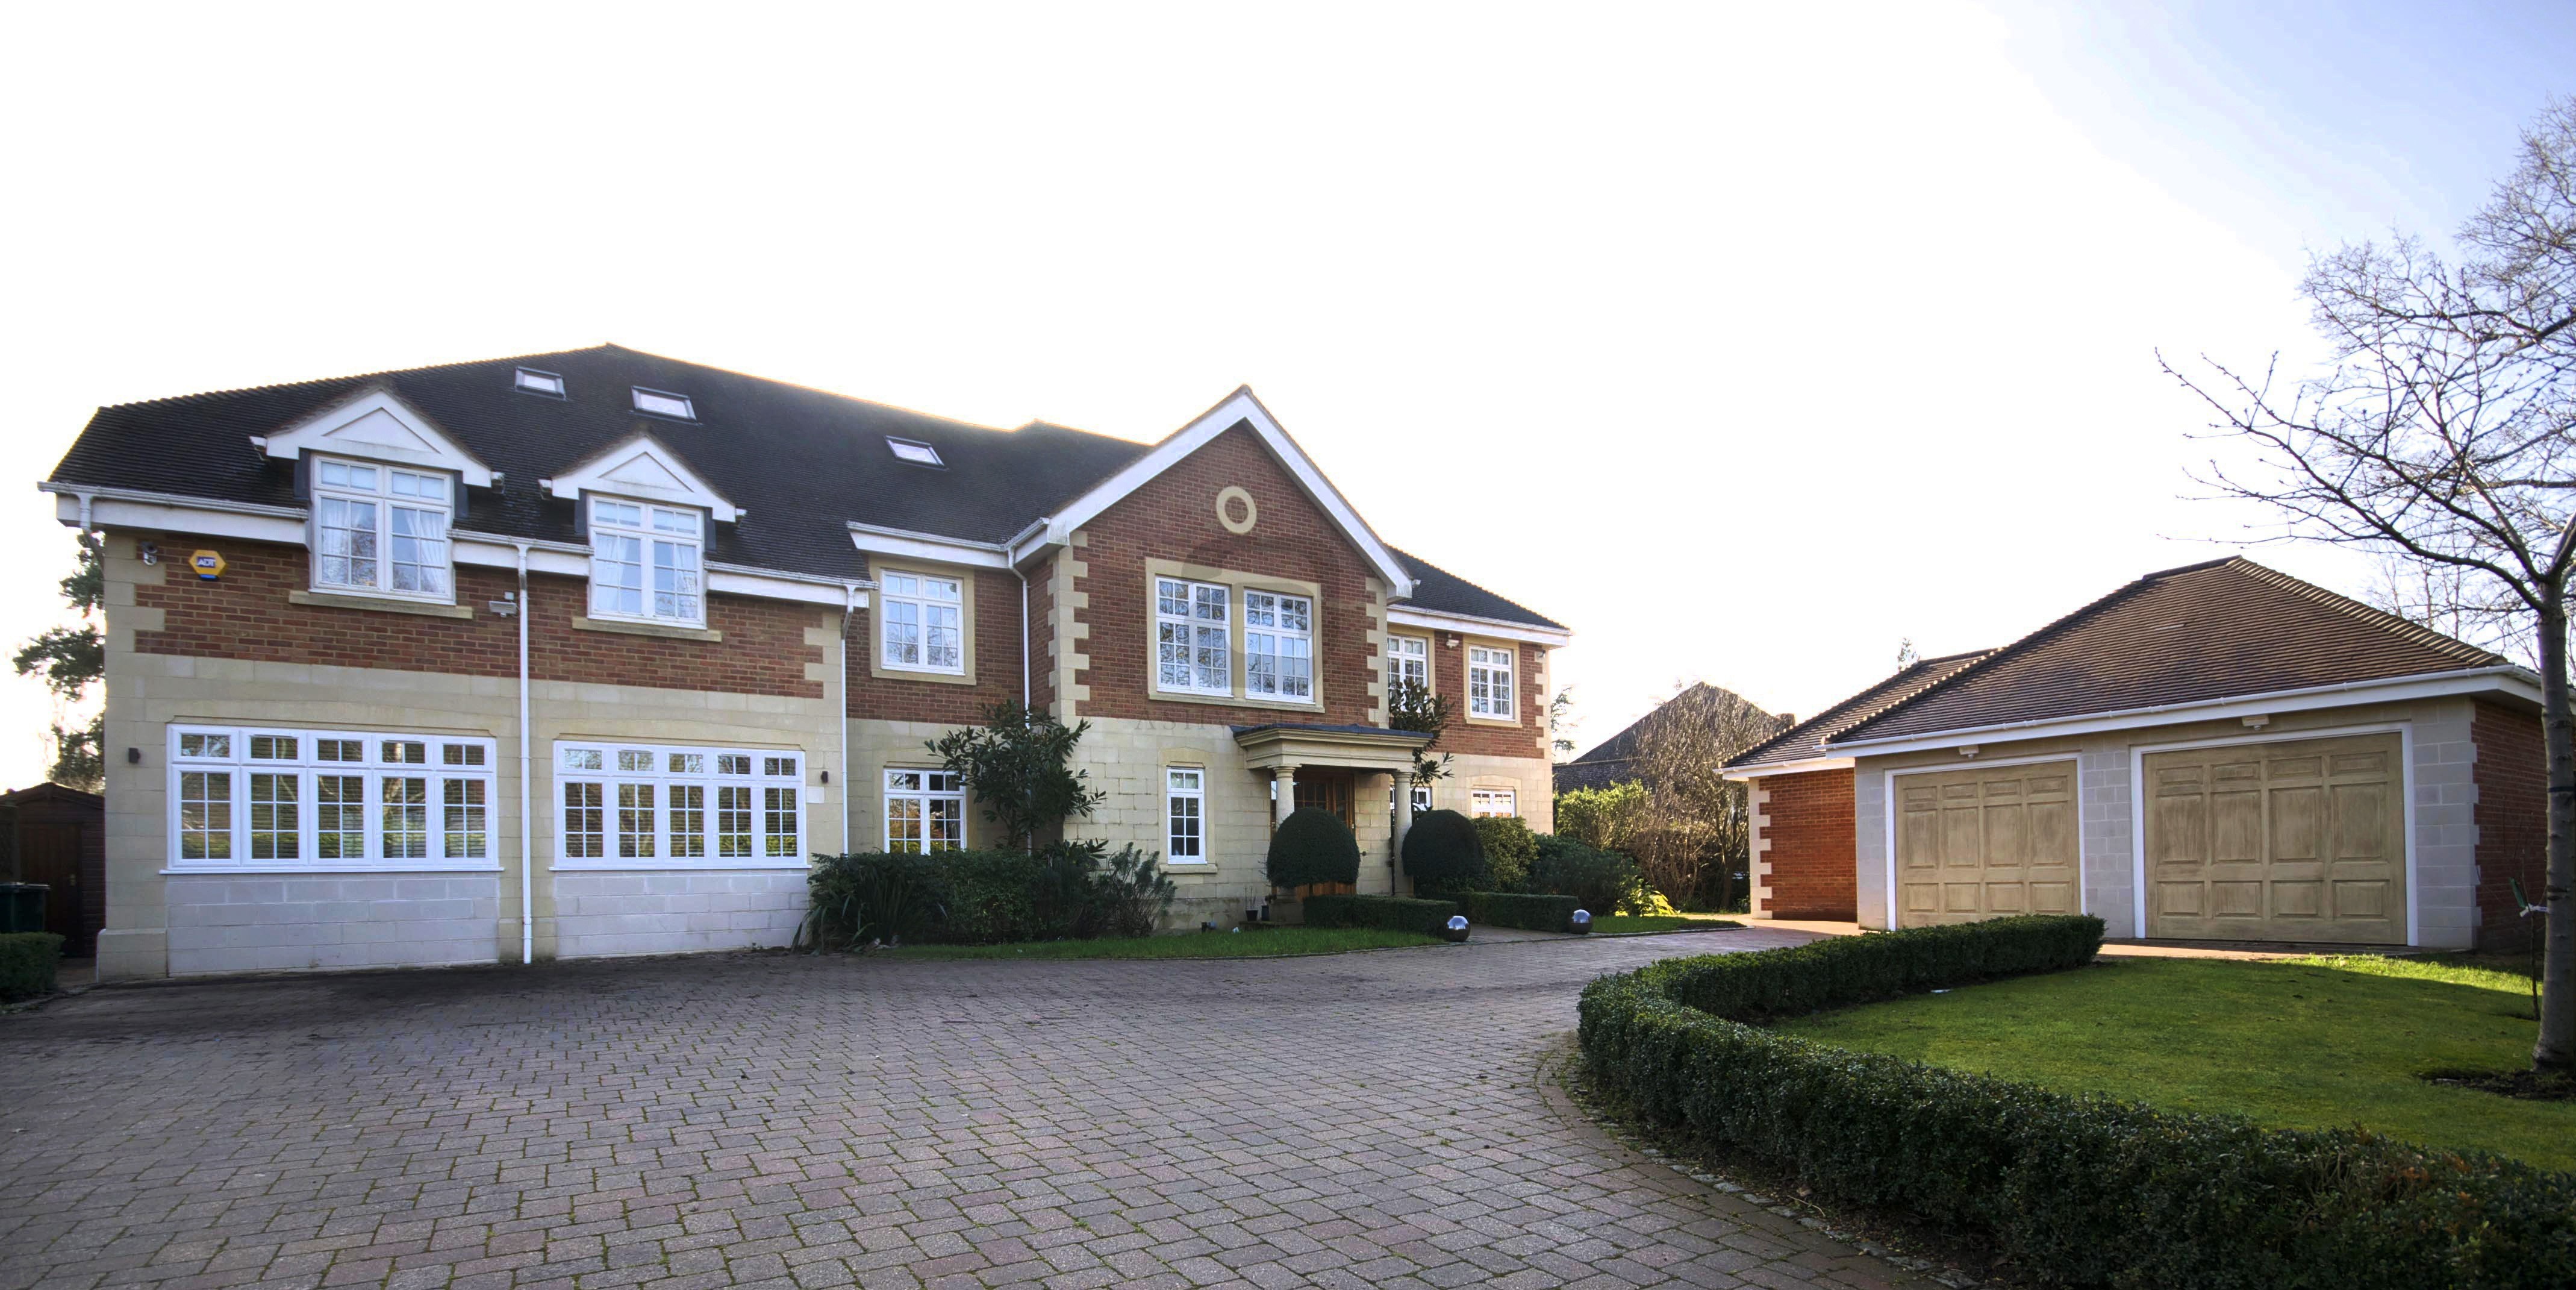 New Builds Amersham - Ashville Inc